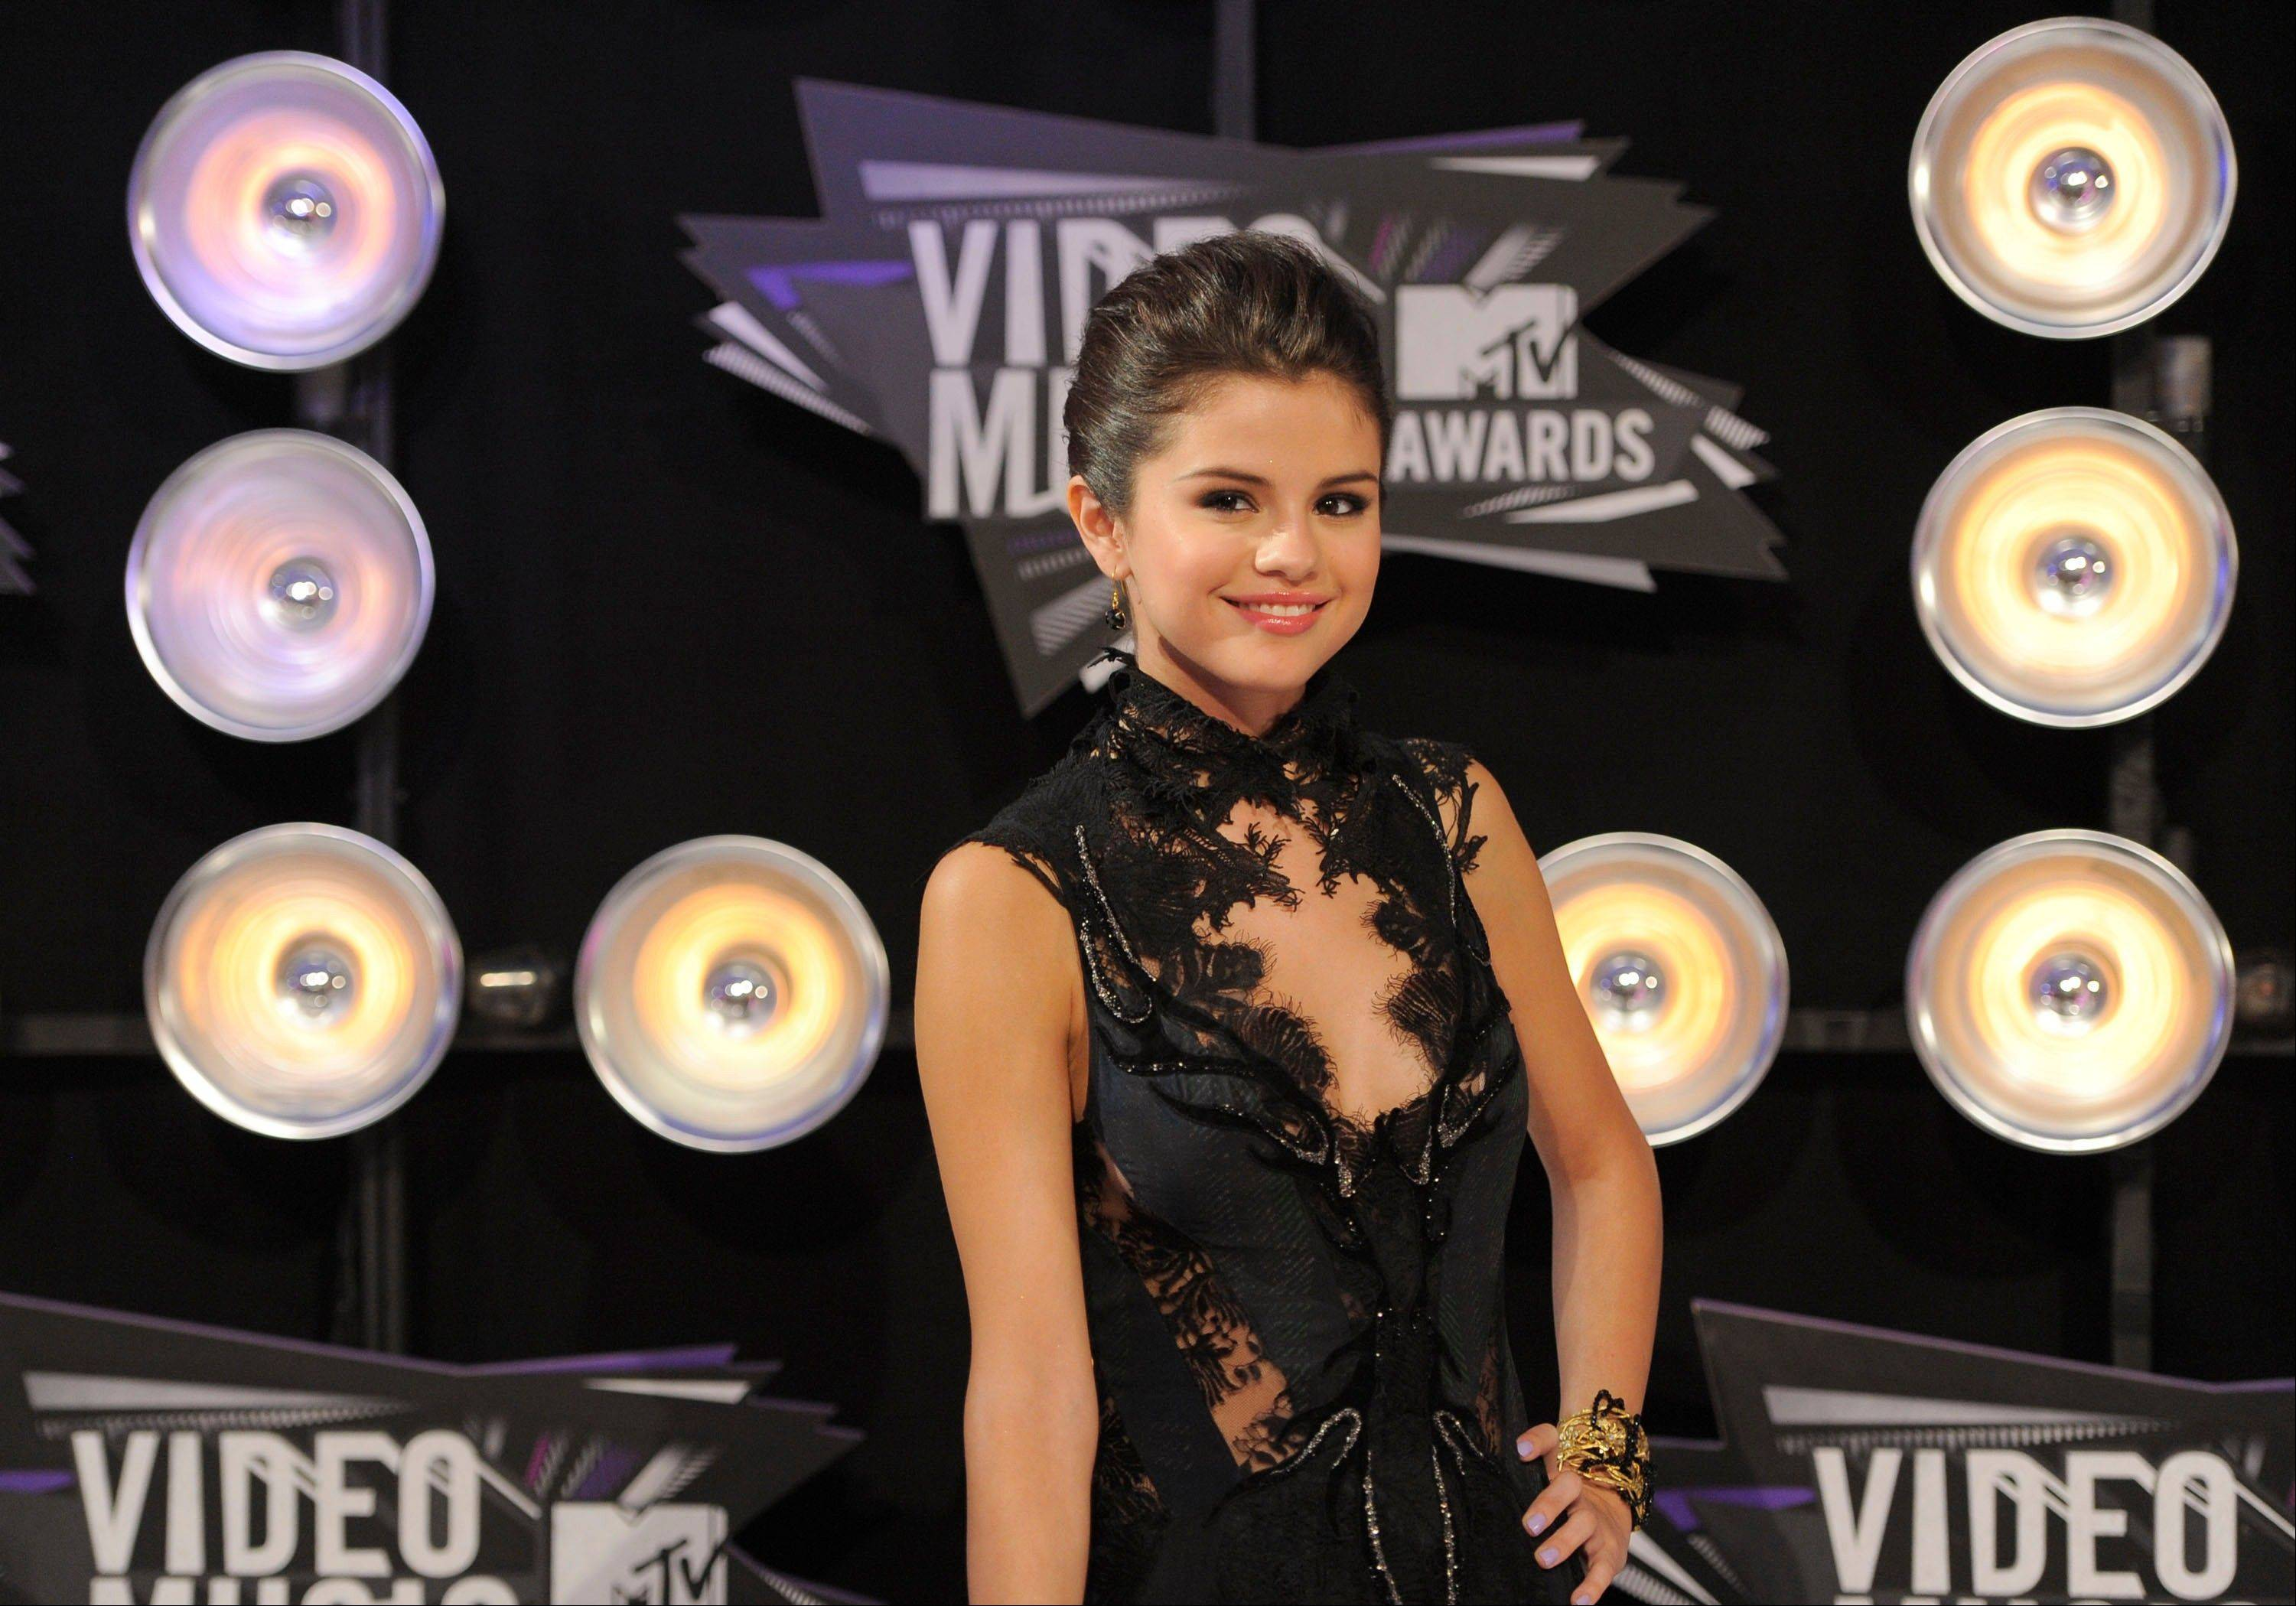 Selena Gomez arrives at the MTV Video Music Awards on Sunday in Los Angeles.